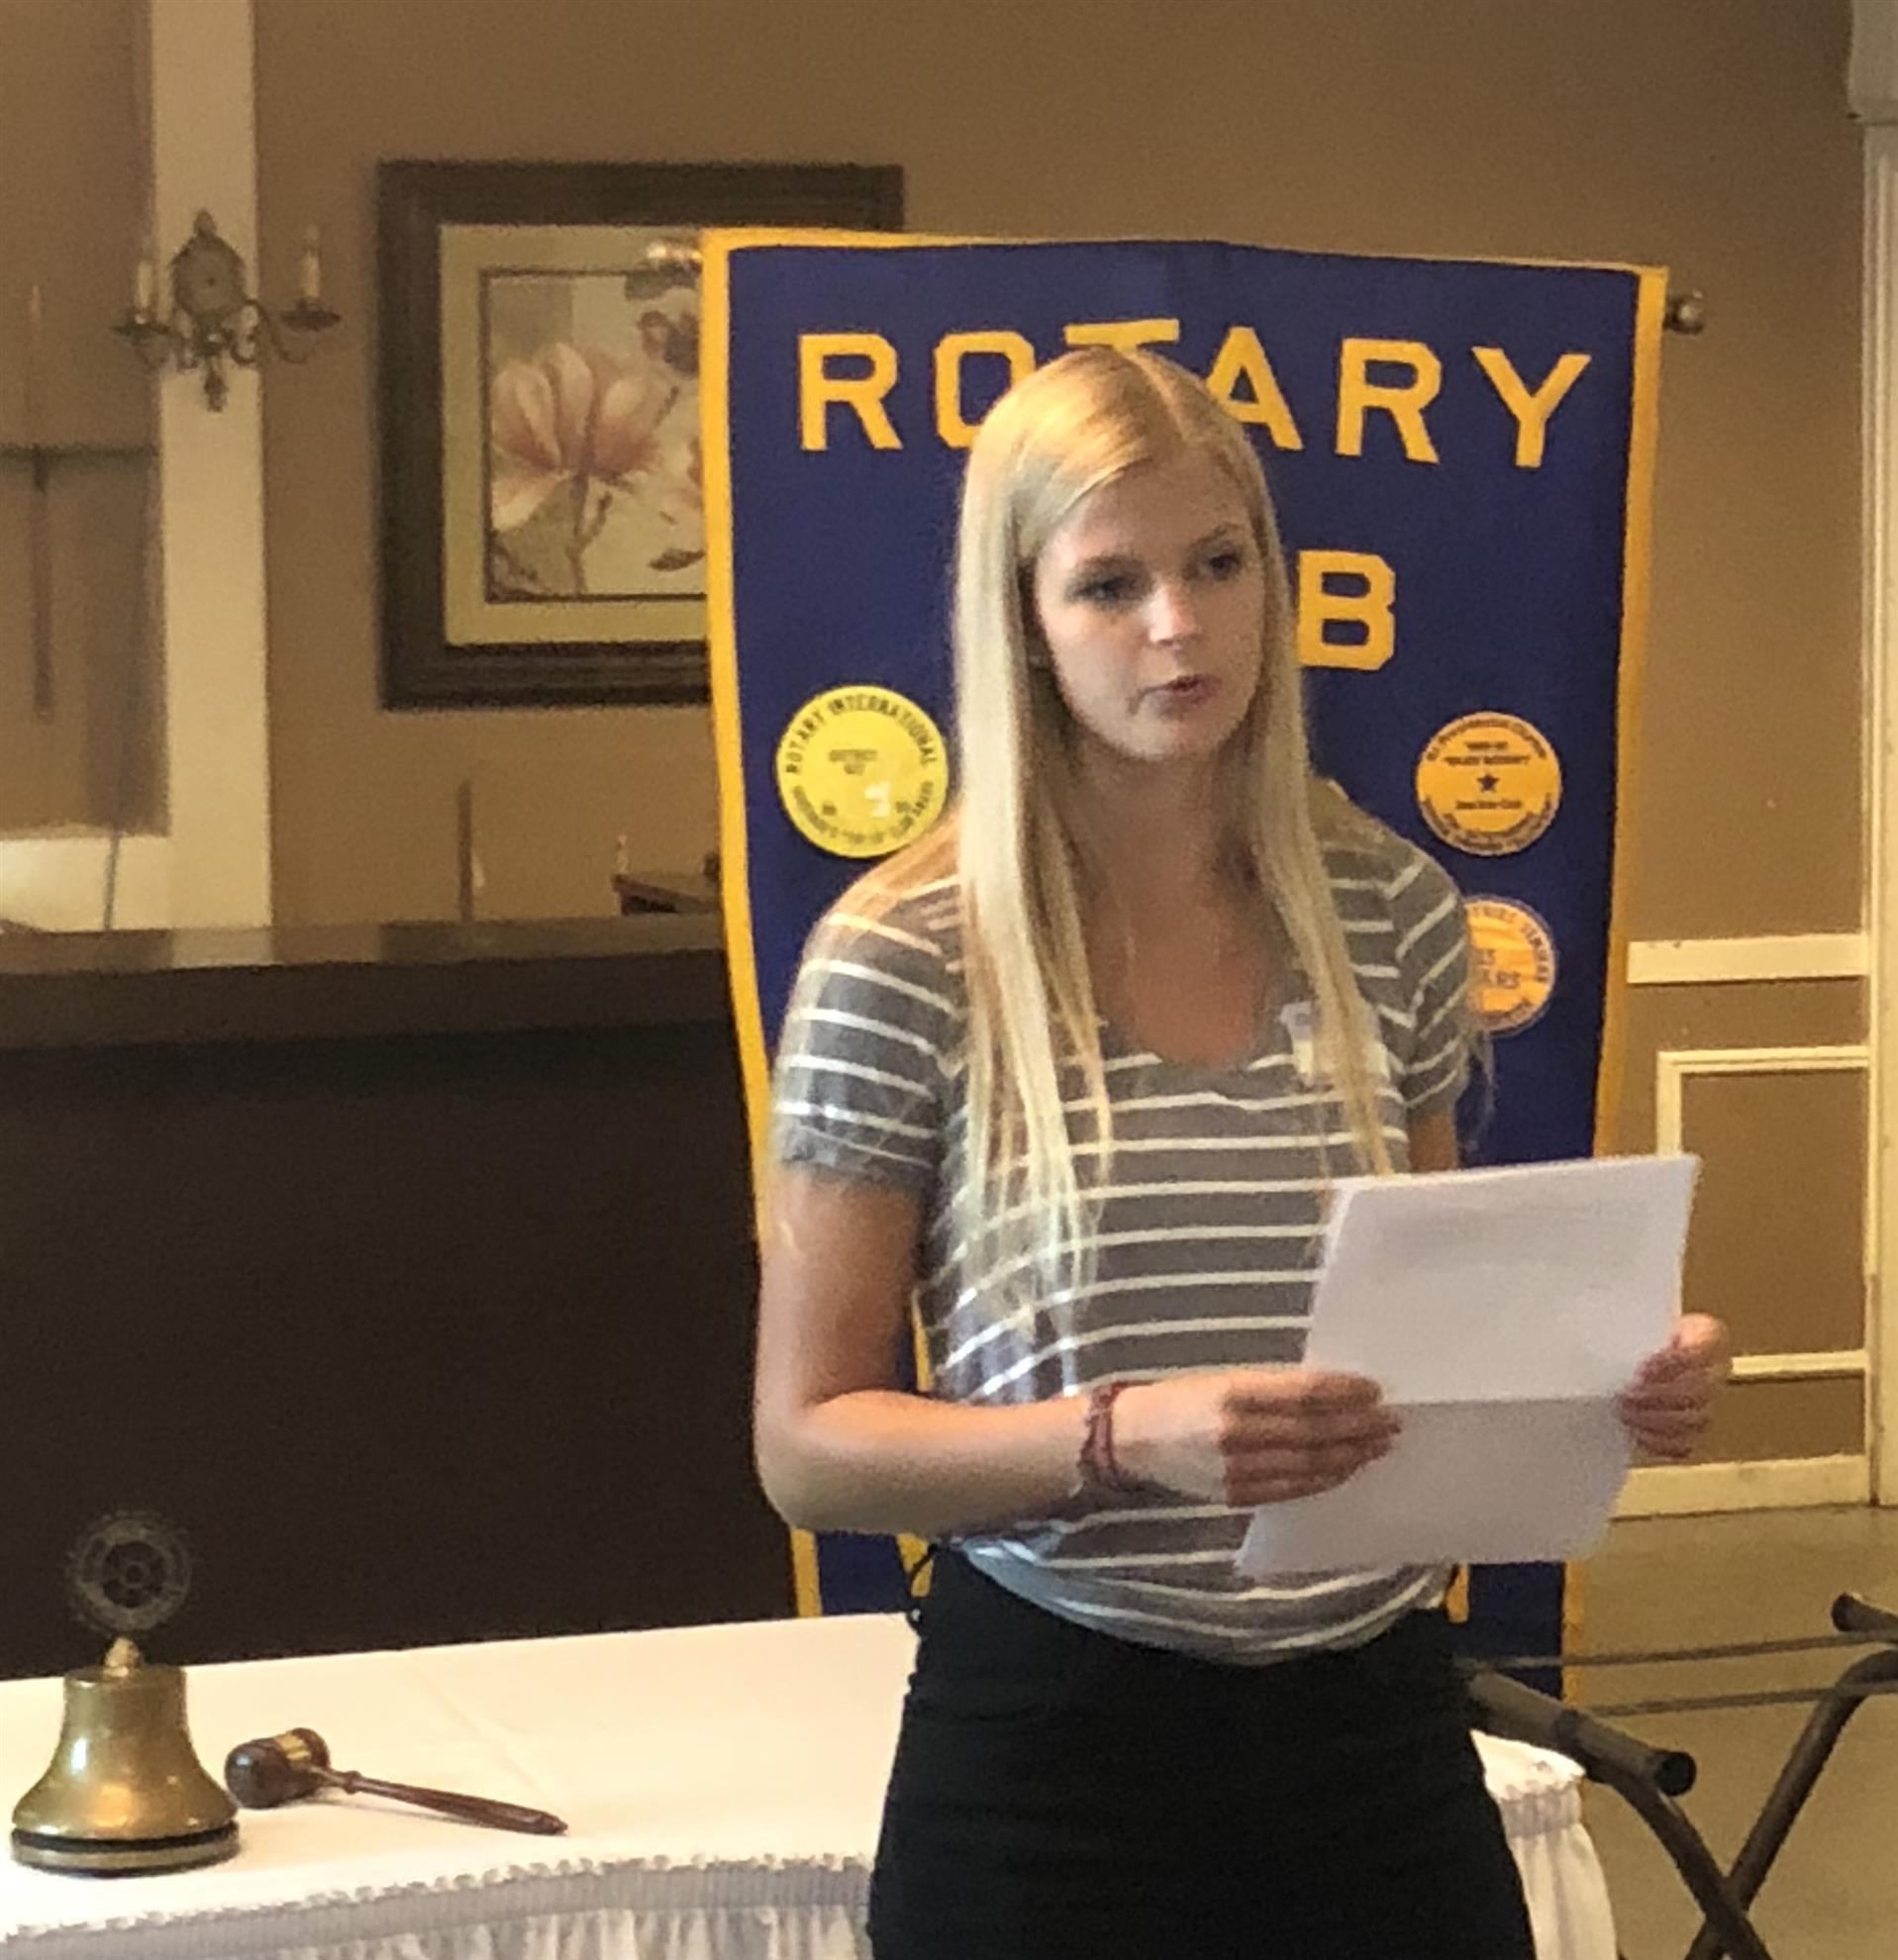 Stories | Rotary Club of Whitnall Park